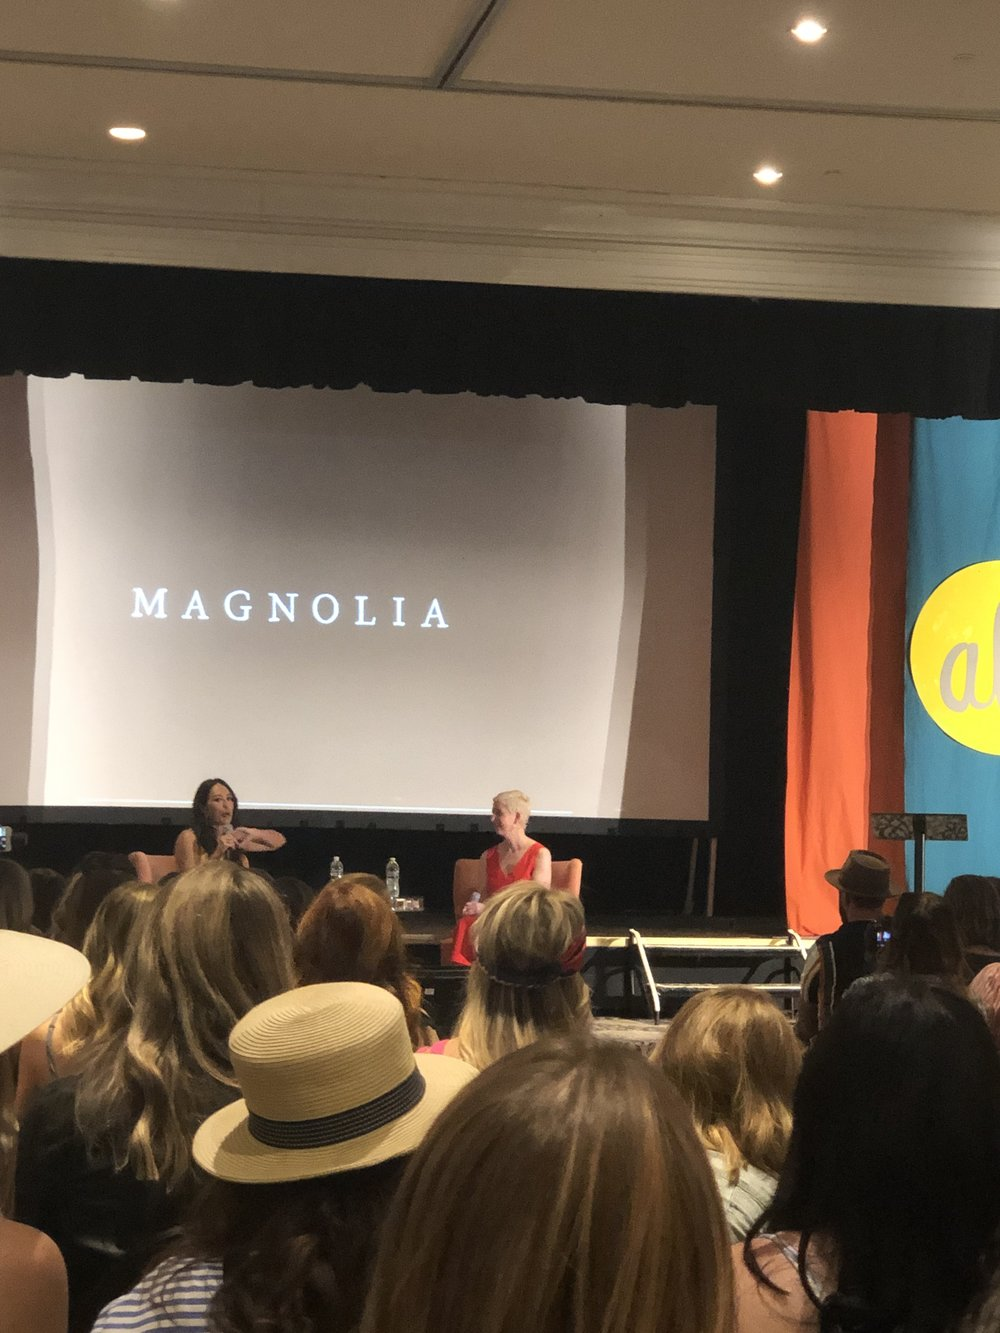 It was so inspiring to hear Joanna Gaines (@joannagaines) chat with the founder of Alt Summit, Gabrielle Blair (@designmom).